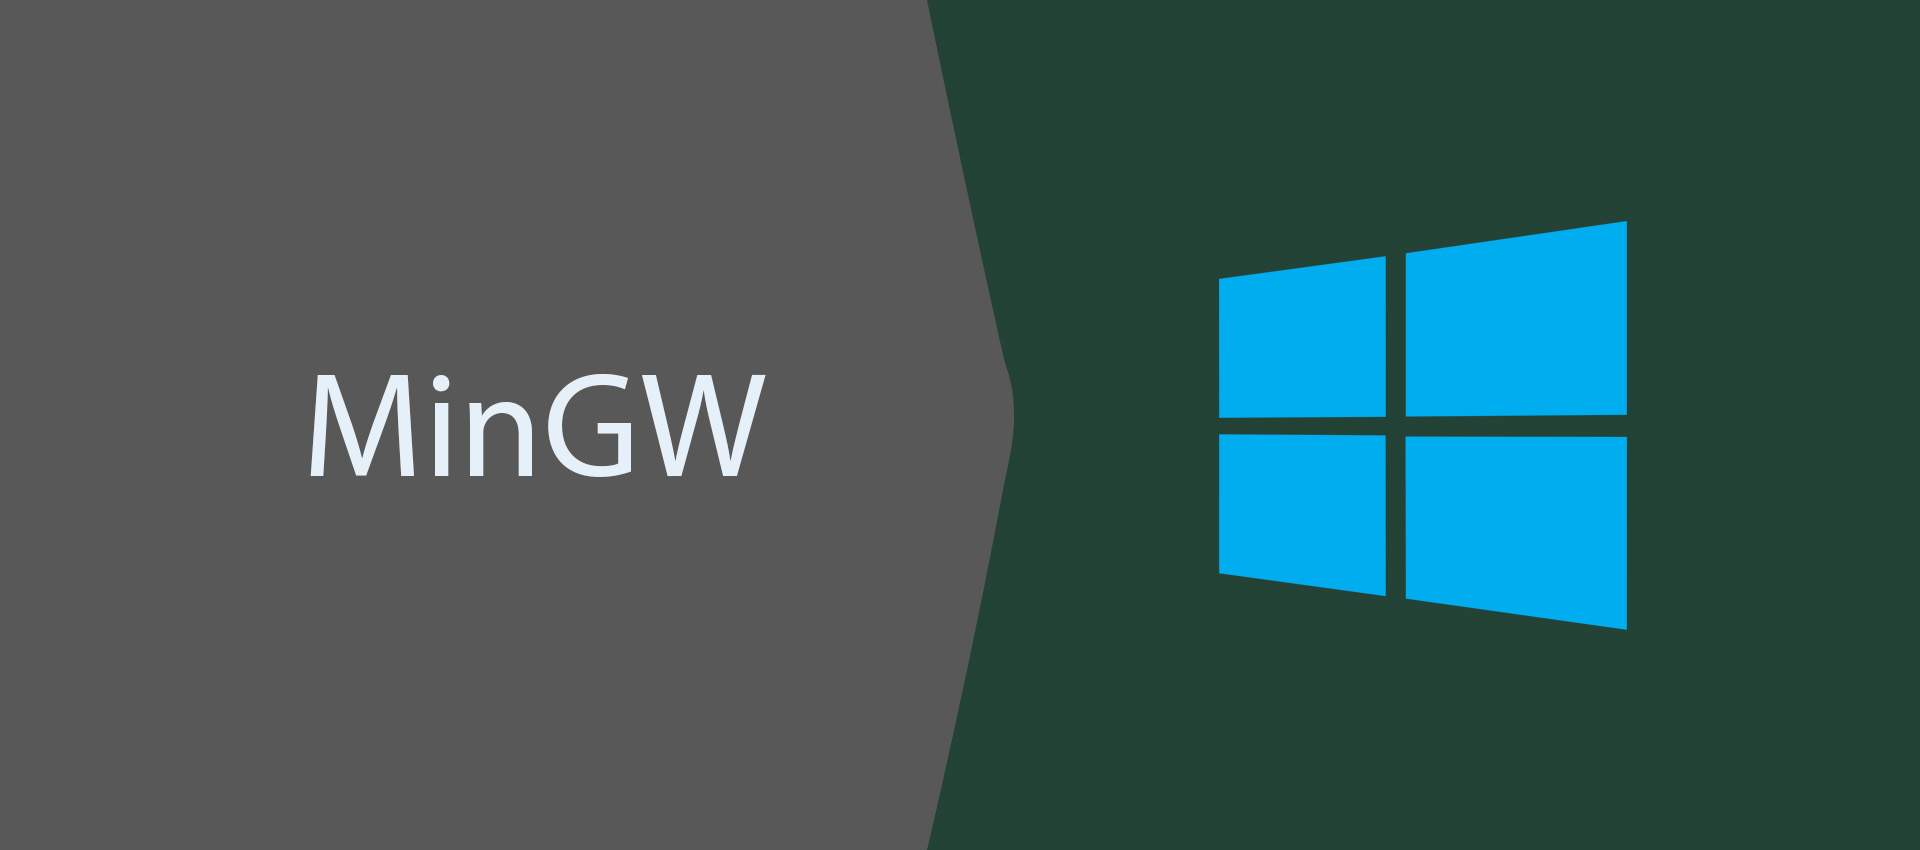 How To Install MinGW on Windows